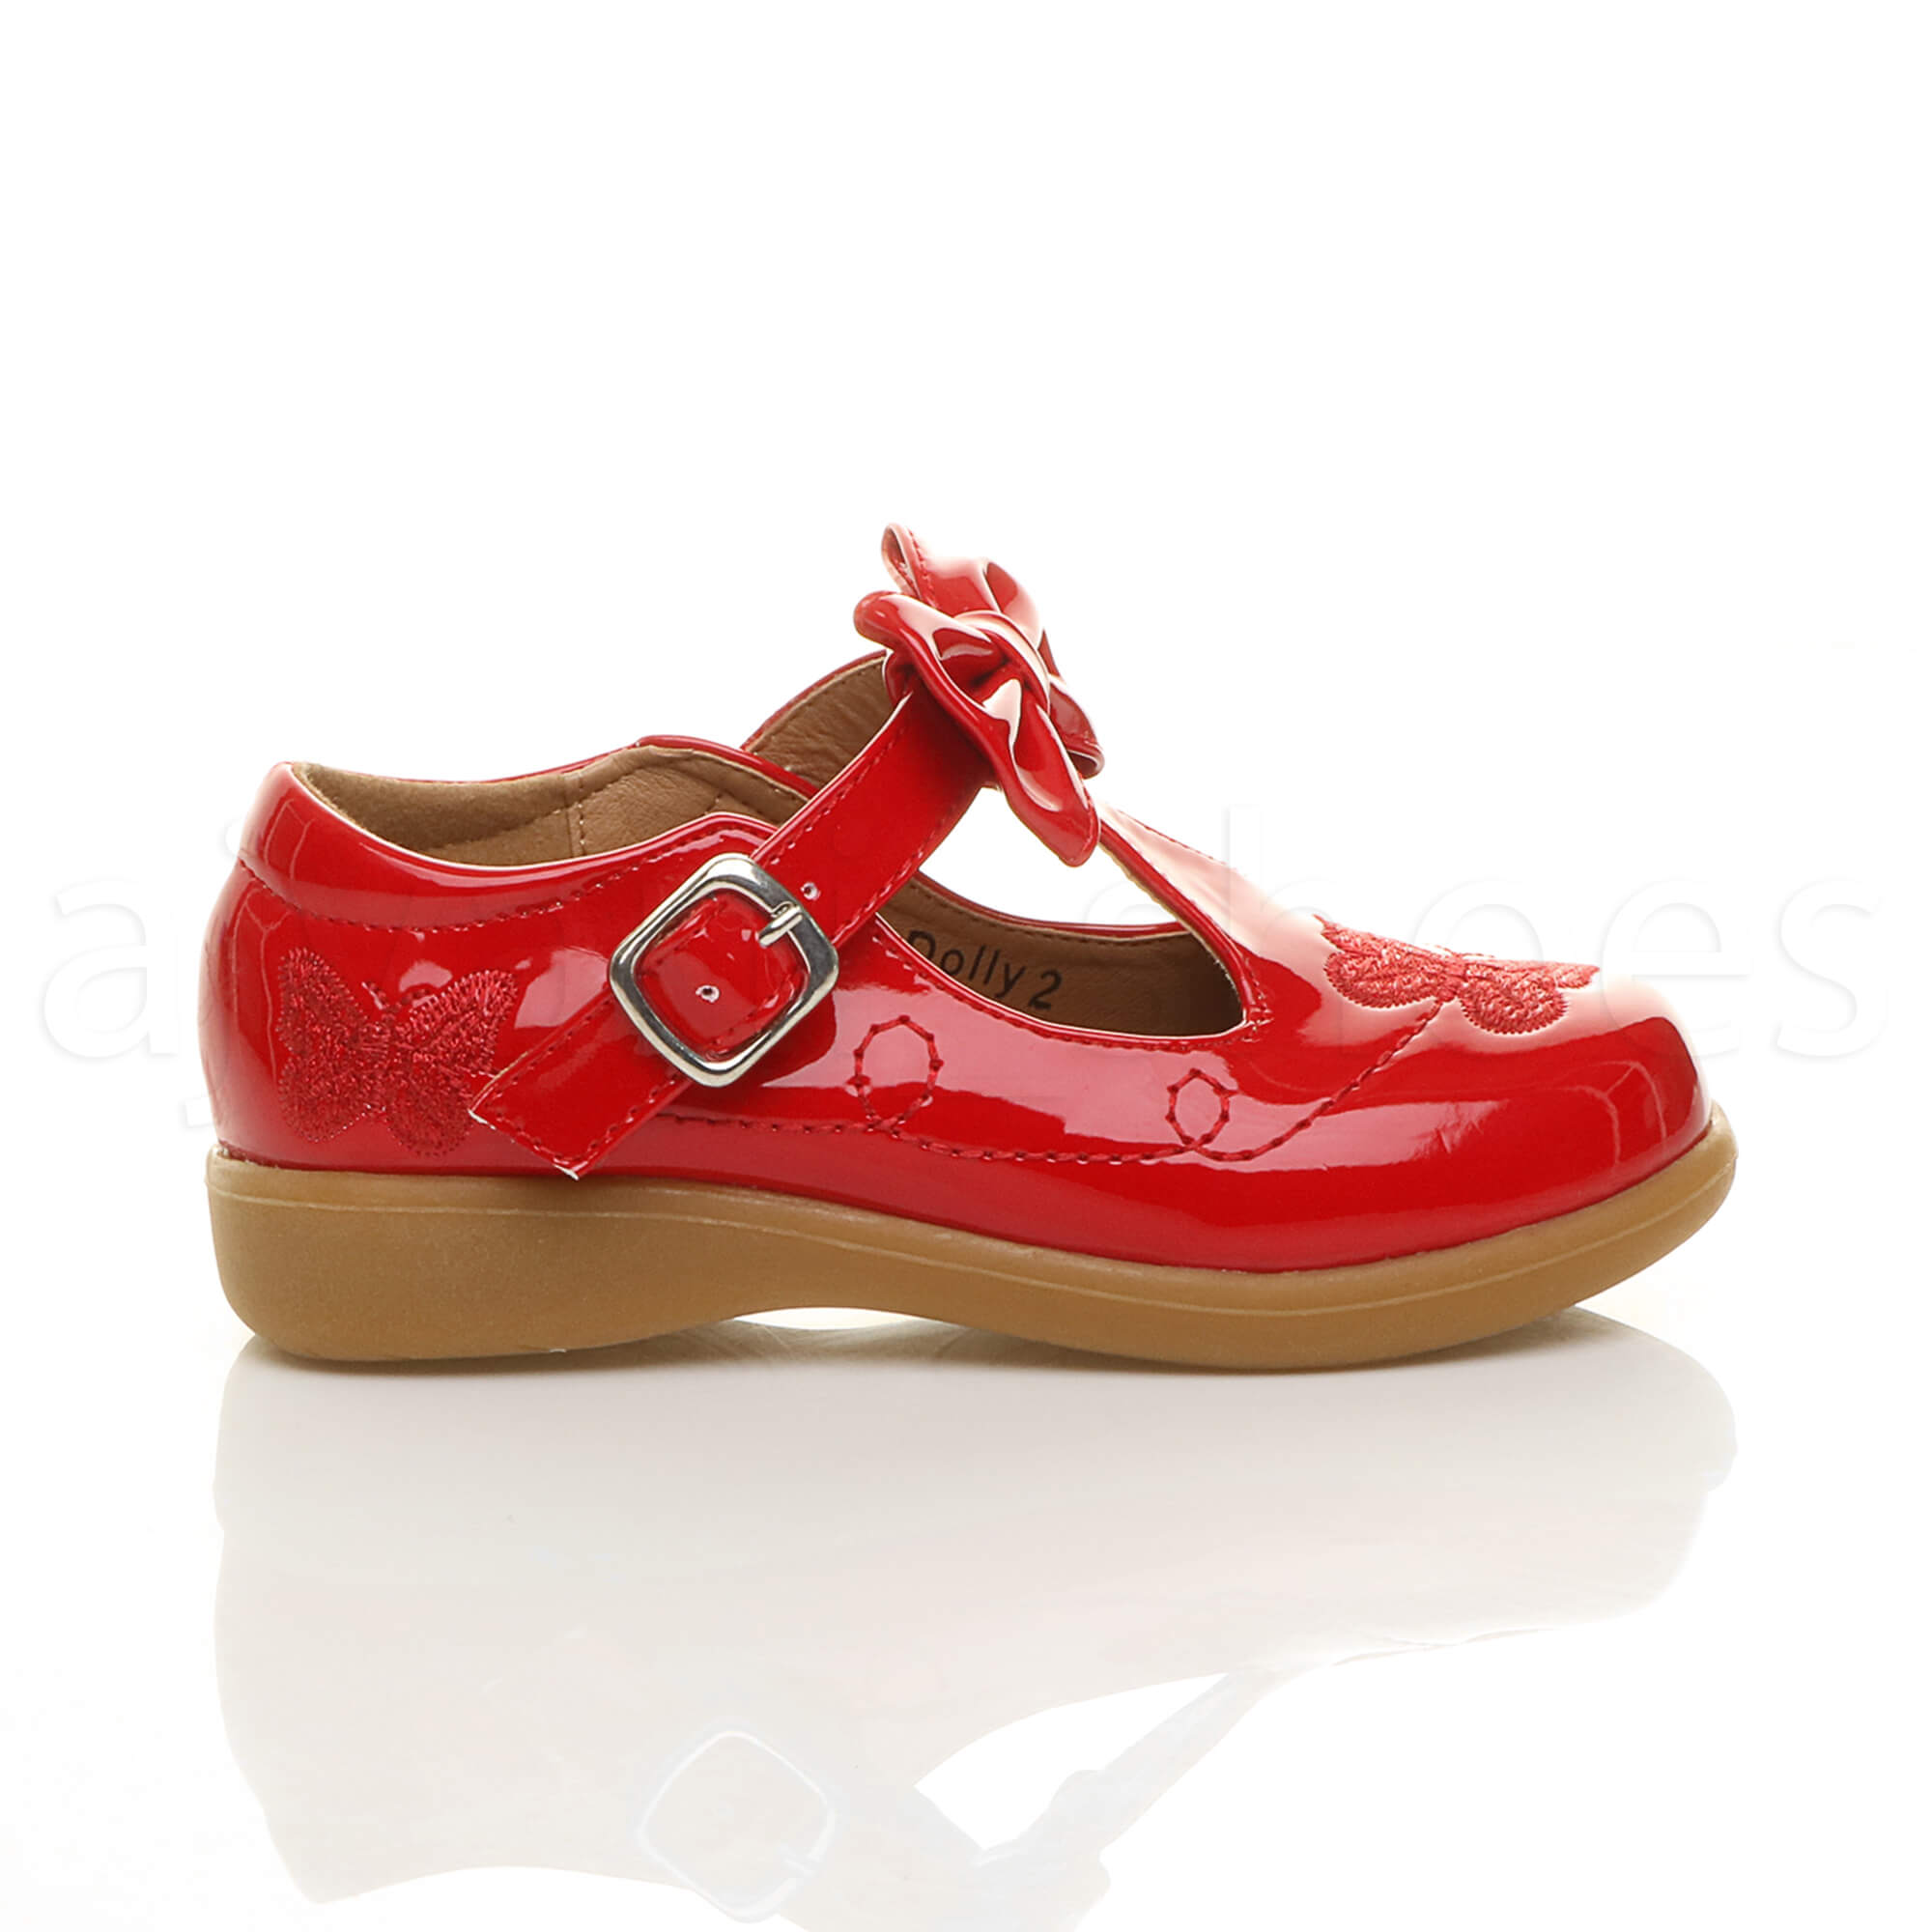 GIRLS-KIDS-CHILDRENS-FLAT-T-BAR-BOW-MARY-JANE-BUTTERFLY-SMART-SCHOOL-SHOES-SIZE